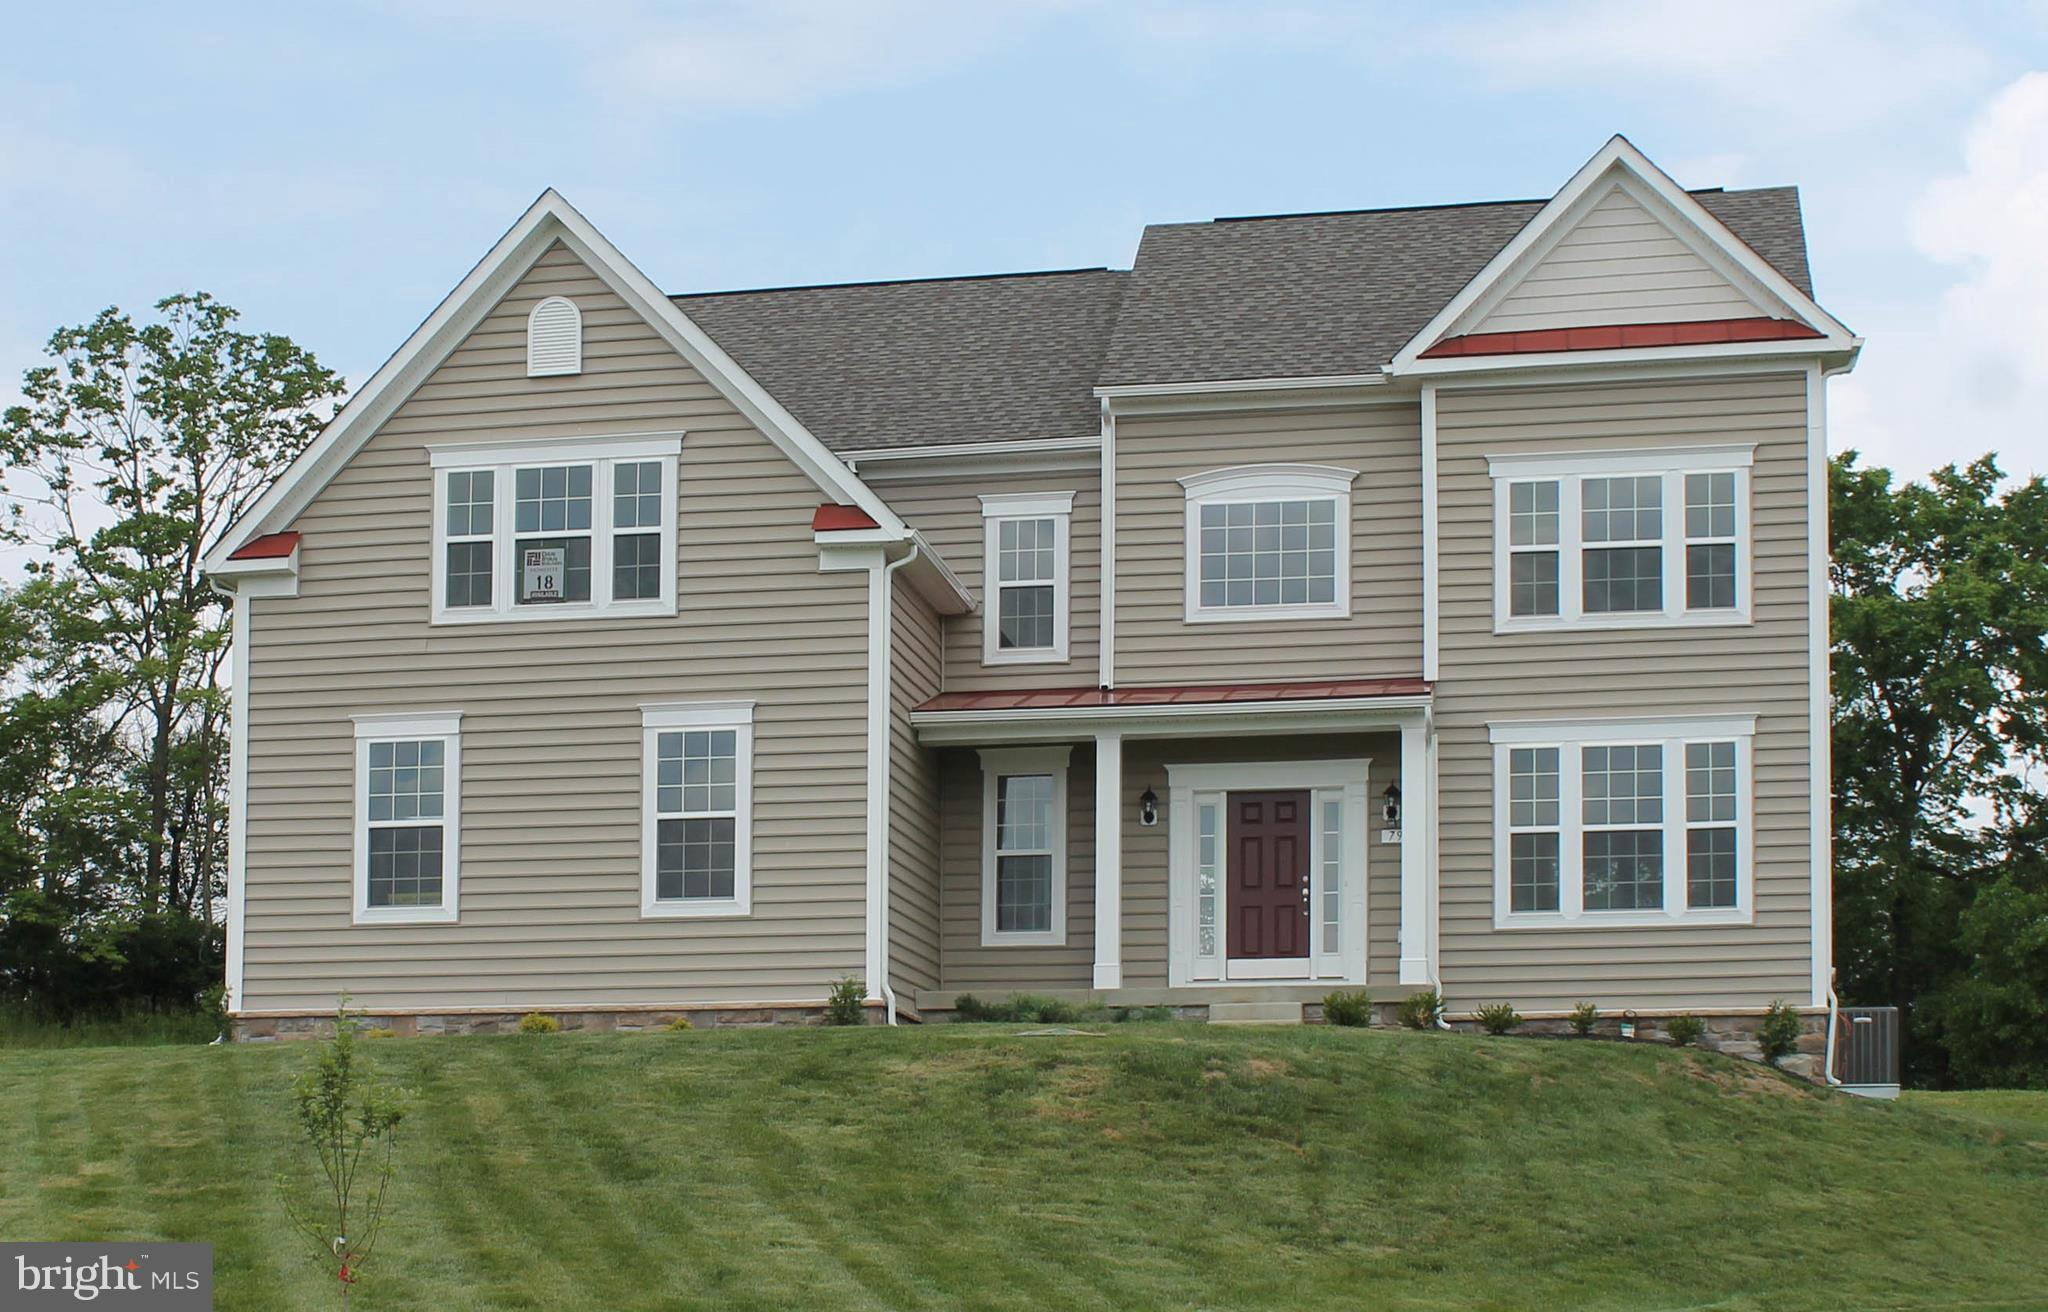 0 STRATHMORE WAY OAKDALE PLAN, MARTINSBURG, WV 25402